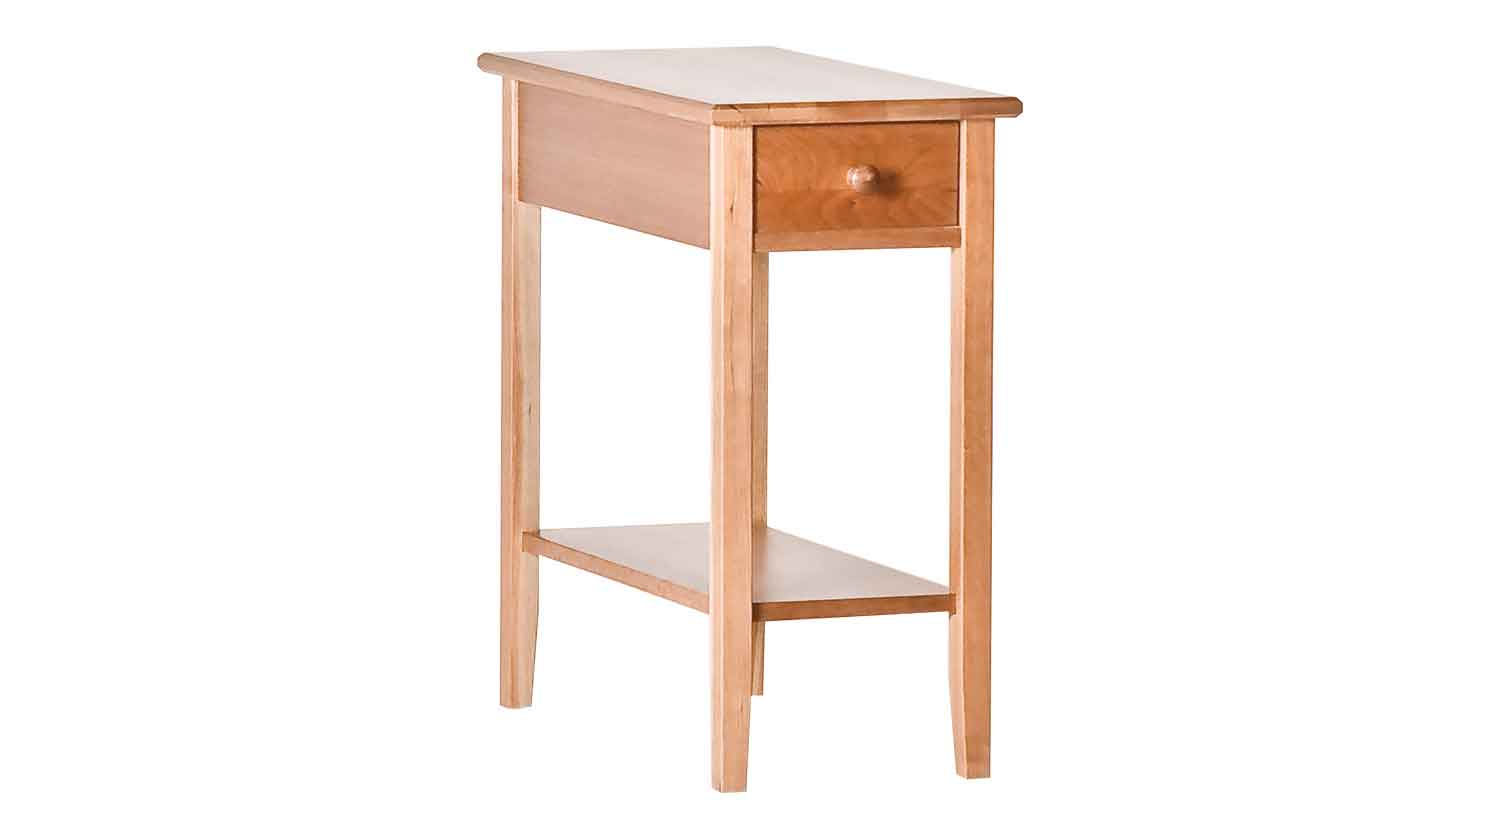 target table console end ideas bedrooms furniture bedroom stands for side africa diy accent and corner littl south round chair tables tall olx study sets dimensions small designs